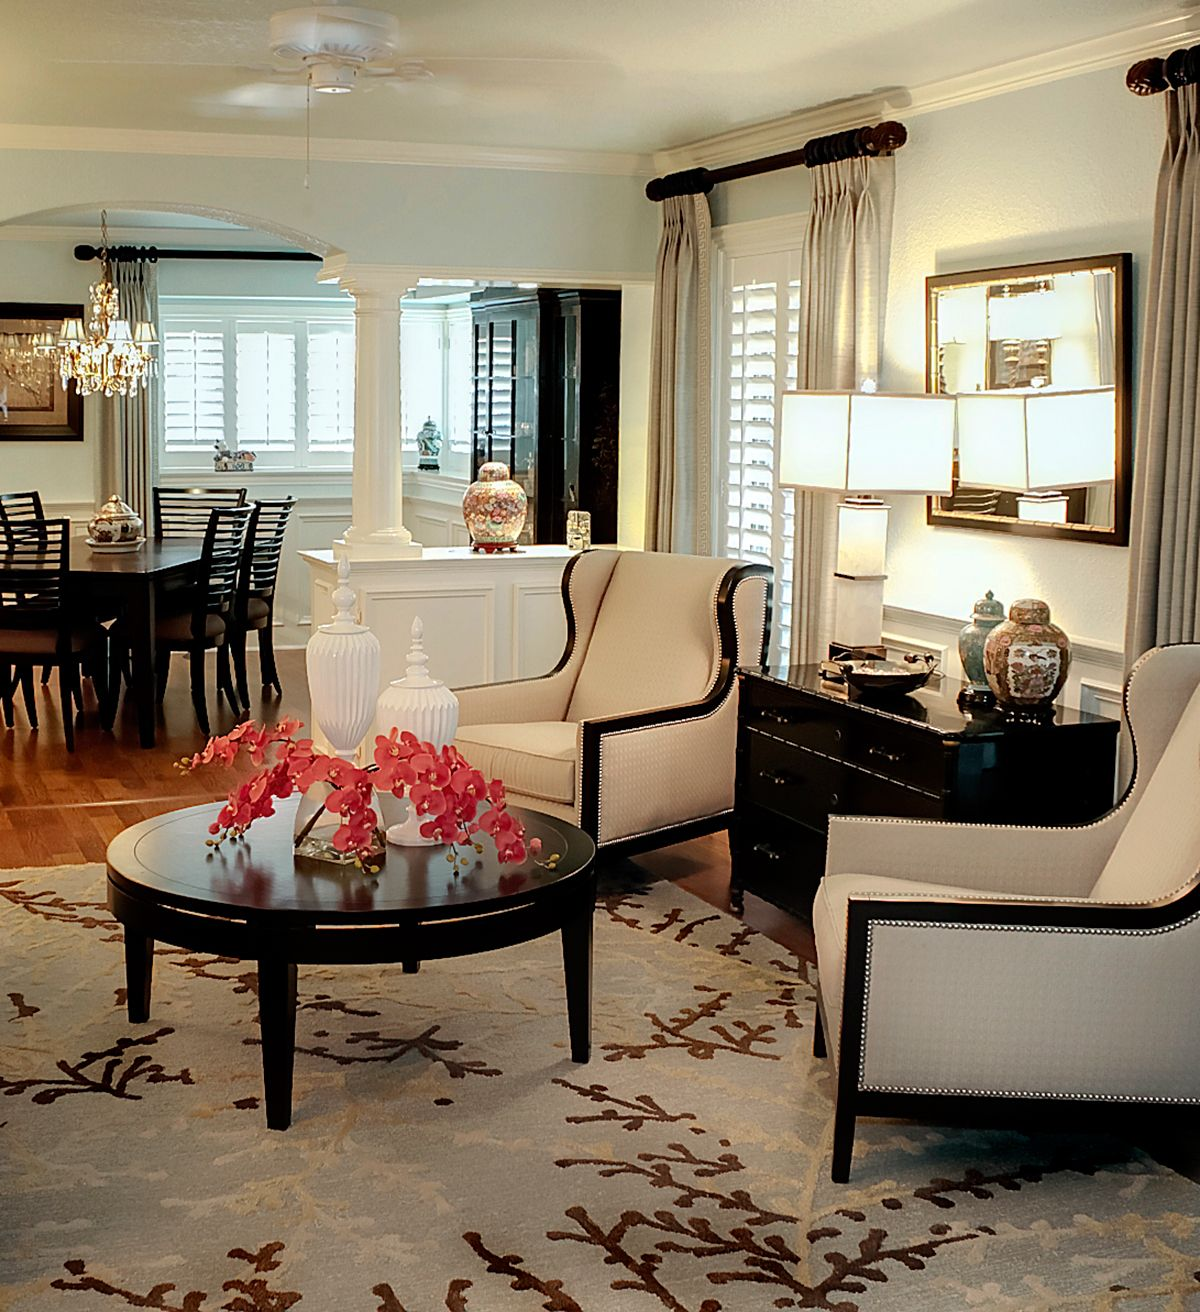 Living room and interior design by mary strong from star for Interior design houston